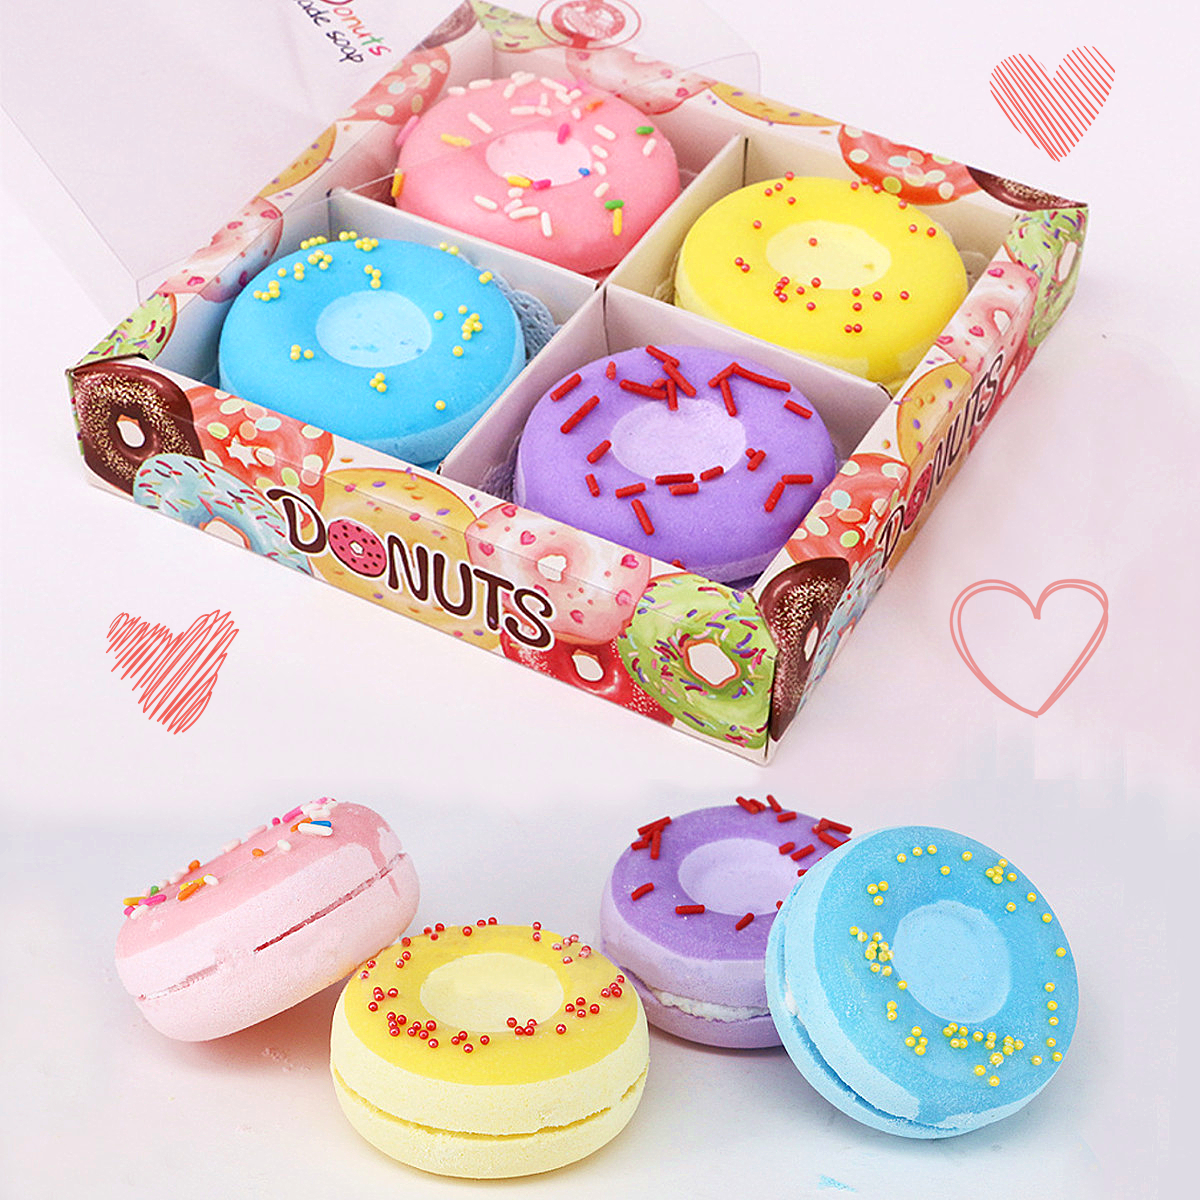 4Pcs/Box Donut Bath Bombs Fizzy Ball Moisturizes Skin Relieves Stress & Pain Assorted Scent Gift Sets